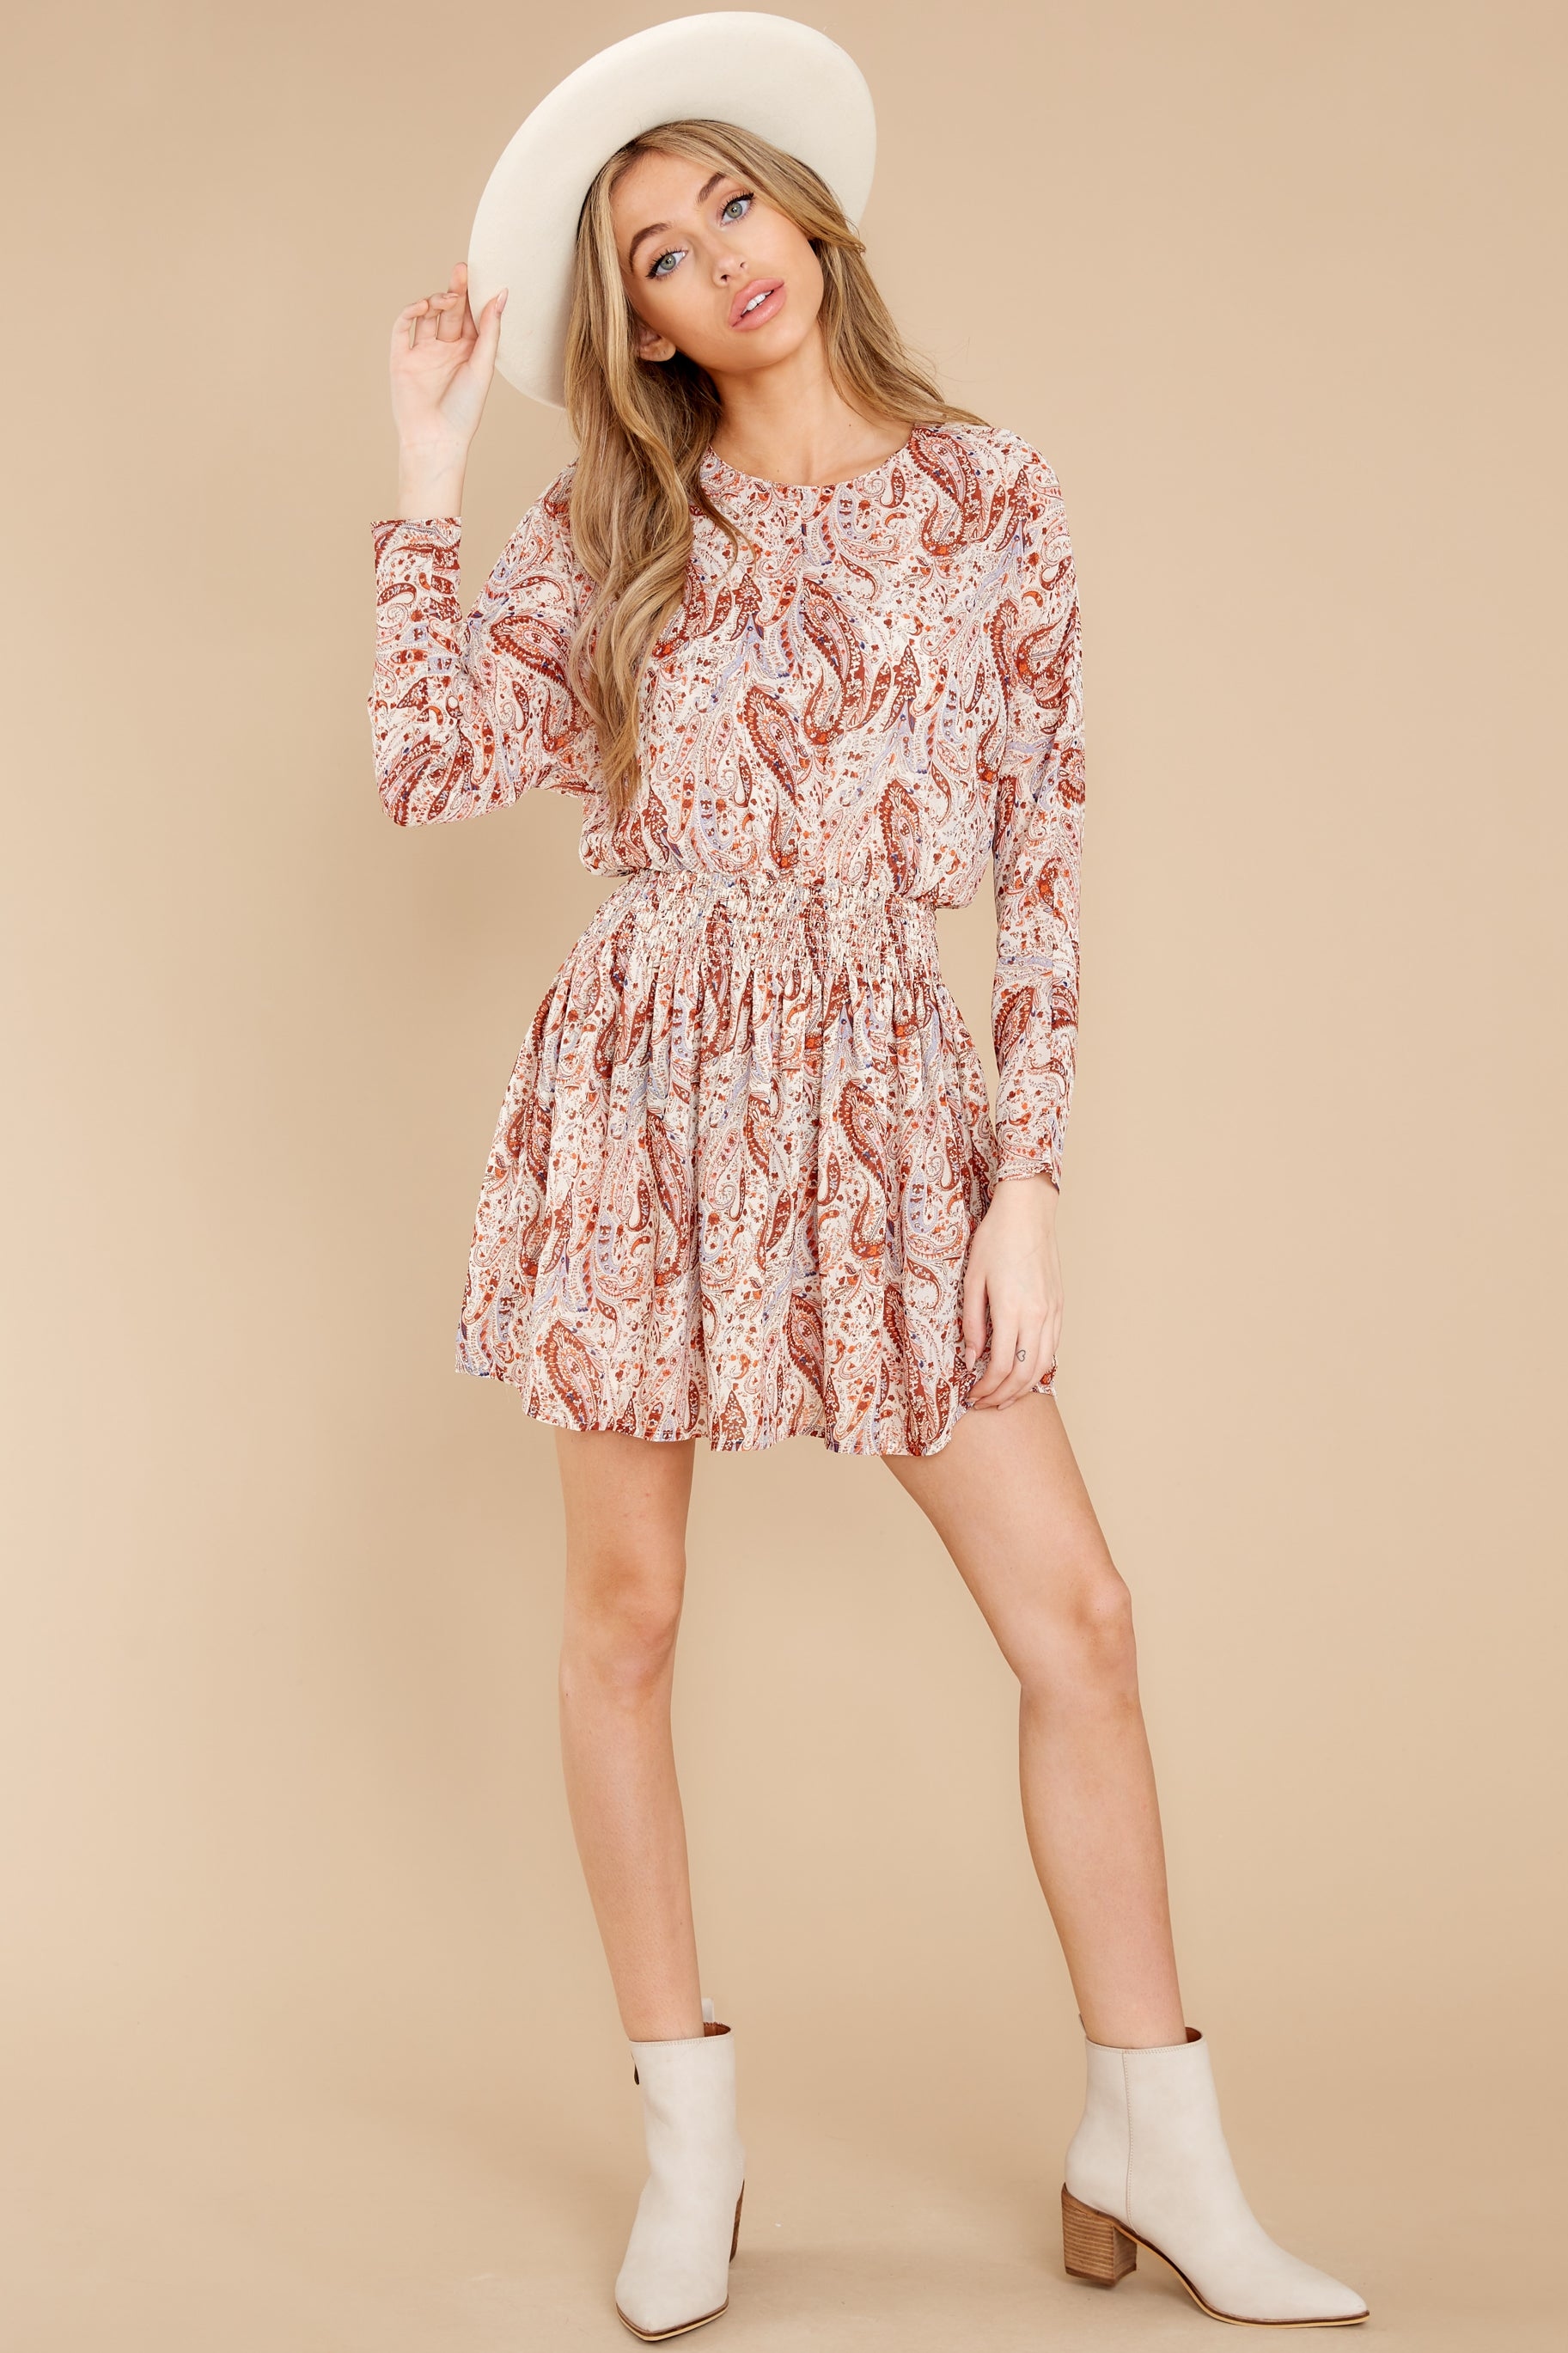 5 Woodstock Multi Paisley Mini Dress at reddress.com